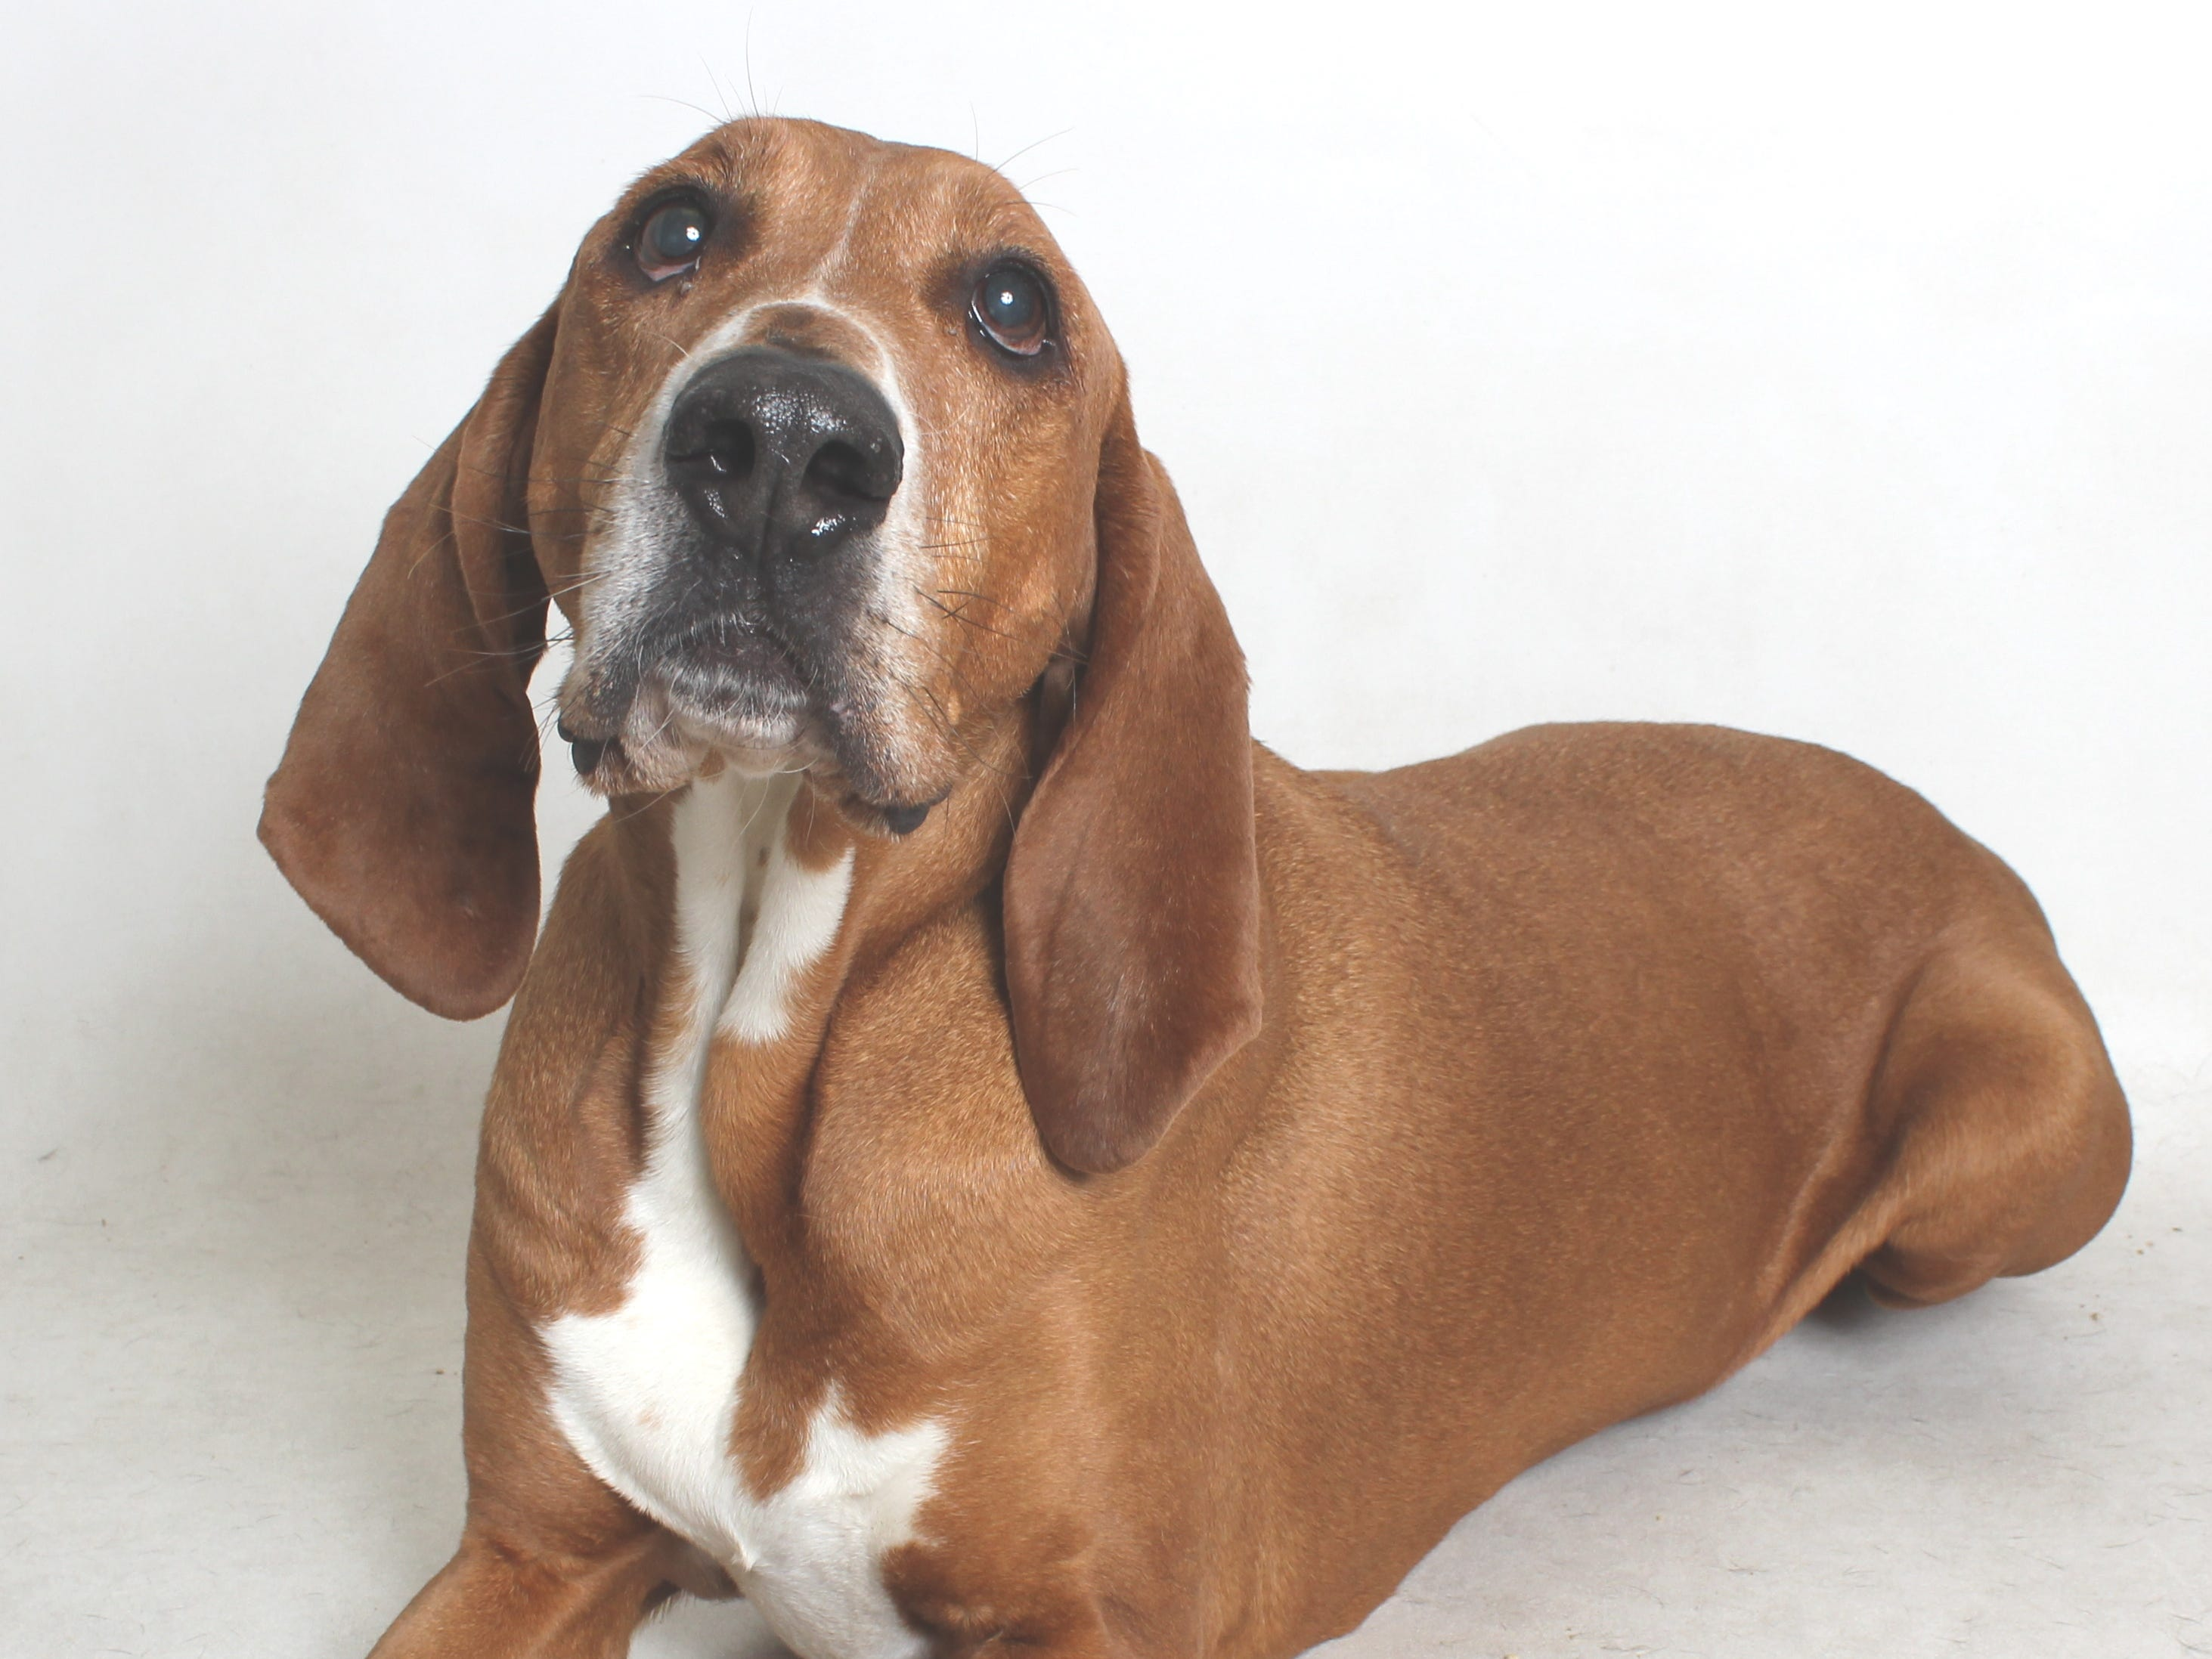 Copper (#126224) is a 7-year-old Redbone coonhound. He is a typical hound, smart, loyal and follows his nose. All feline and canine adoptions include spaying or neutering, vaccinations and a microchip. Visit Haven Humane Society, 7449 Eastside Road, Redding. Call 241-1653. Go to www.havenhumane.net.